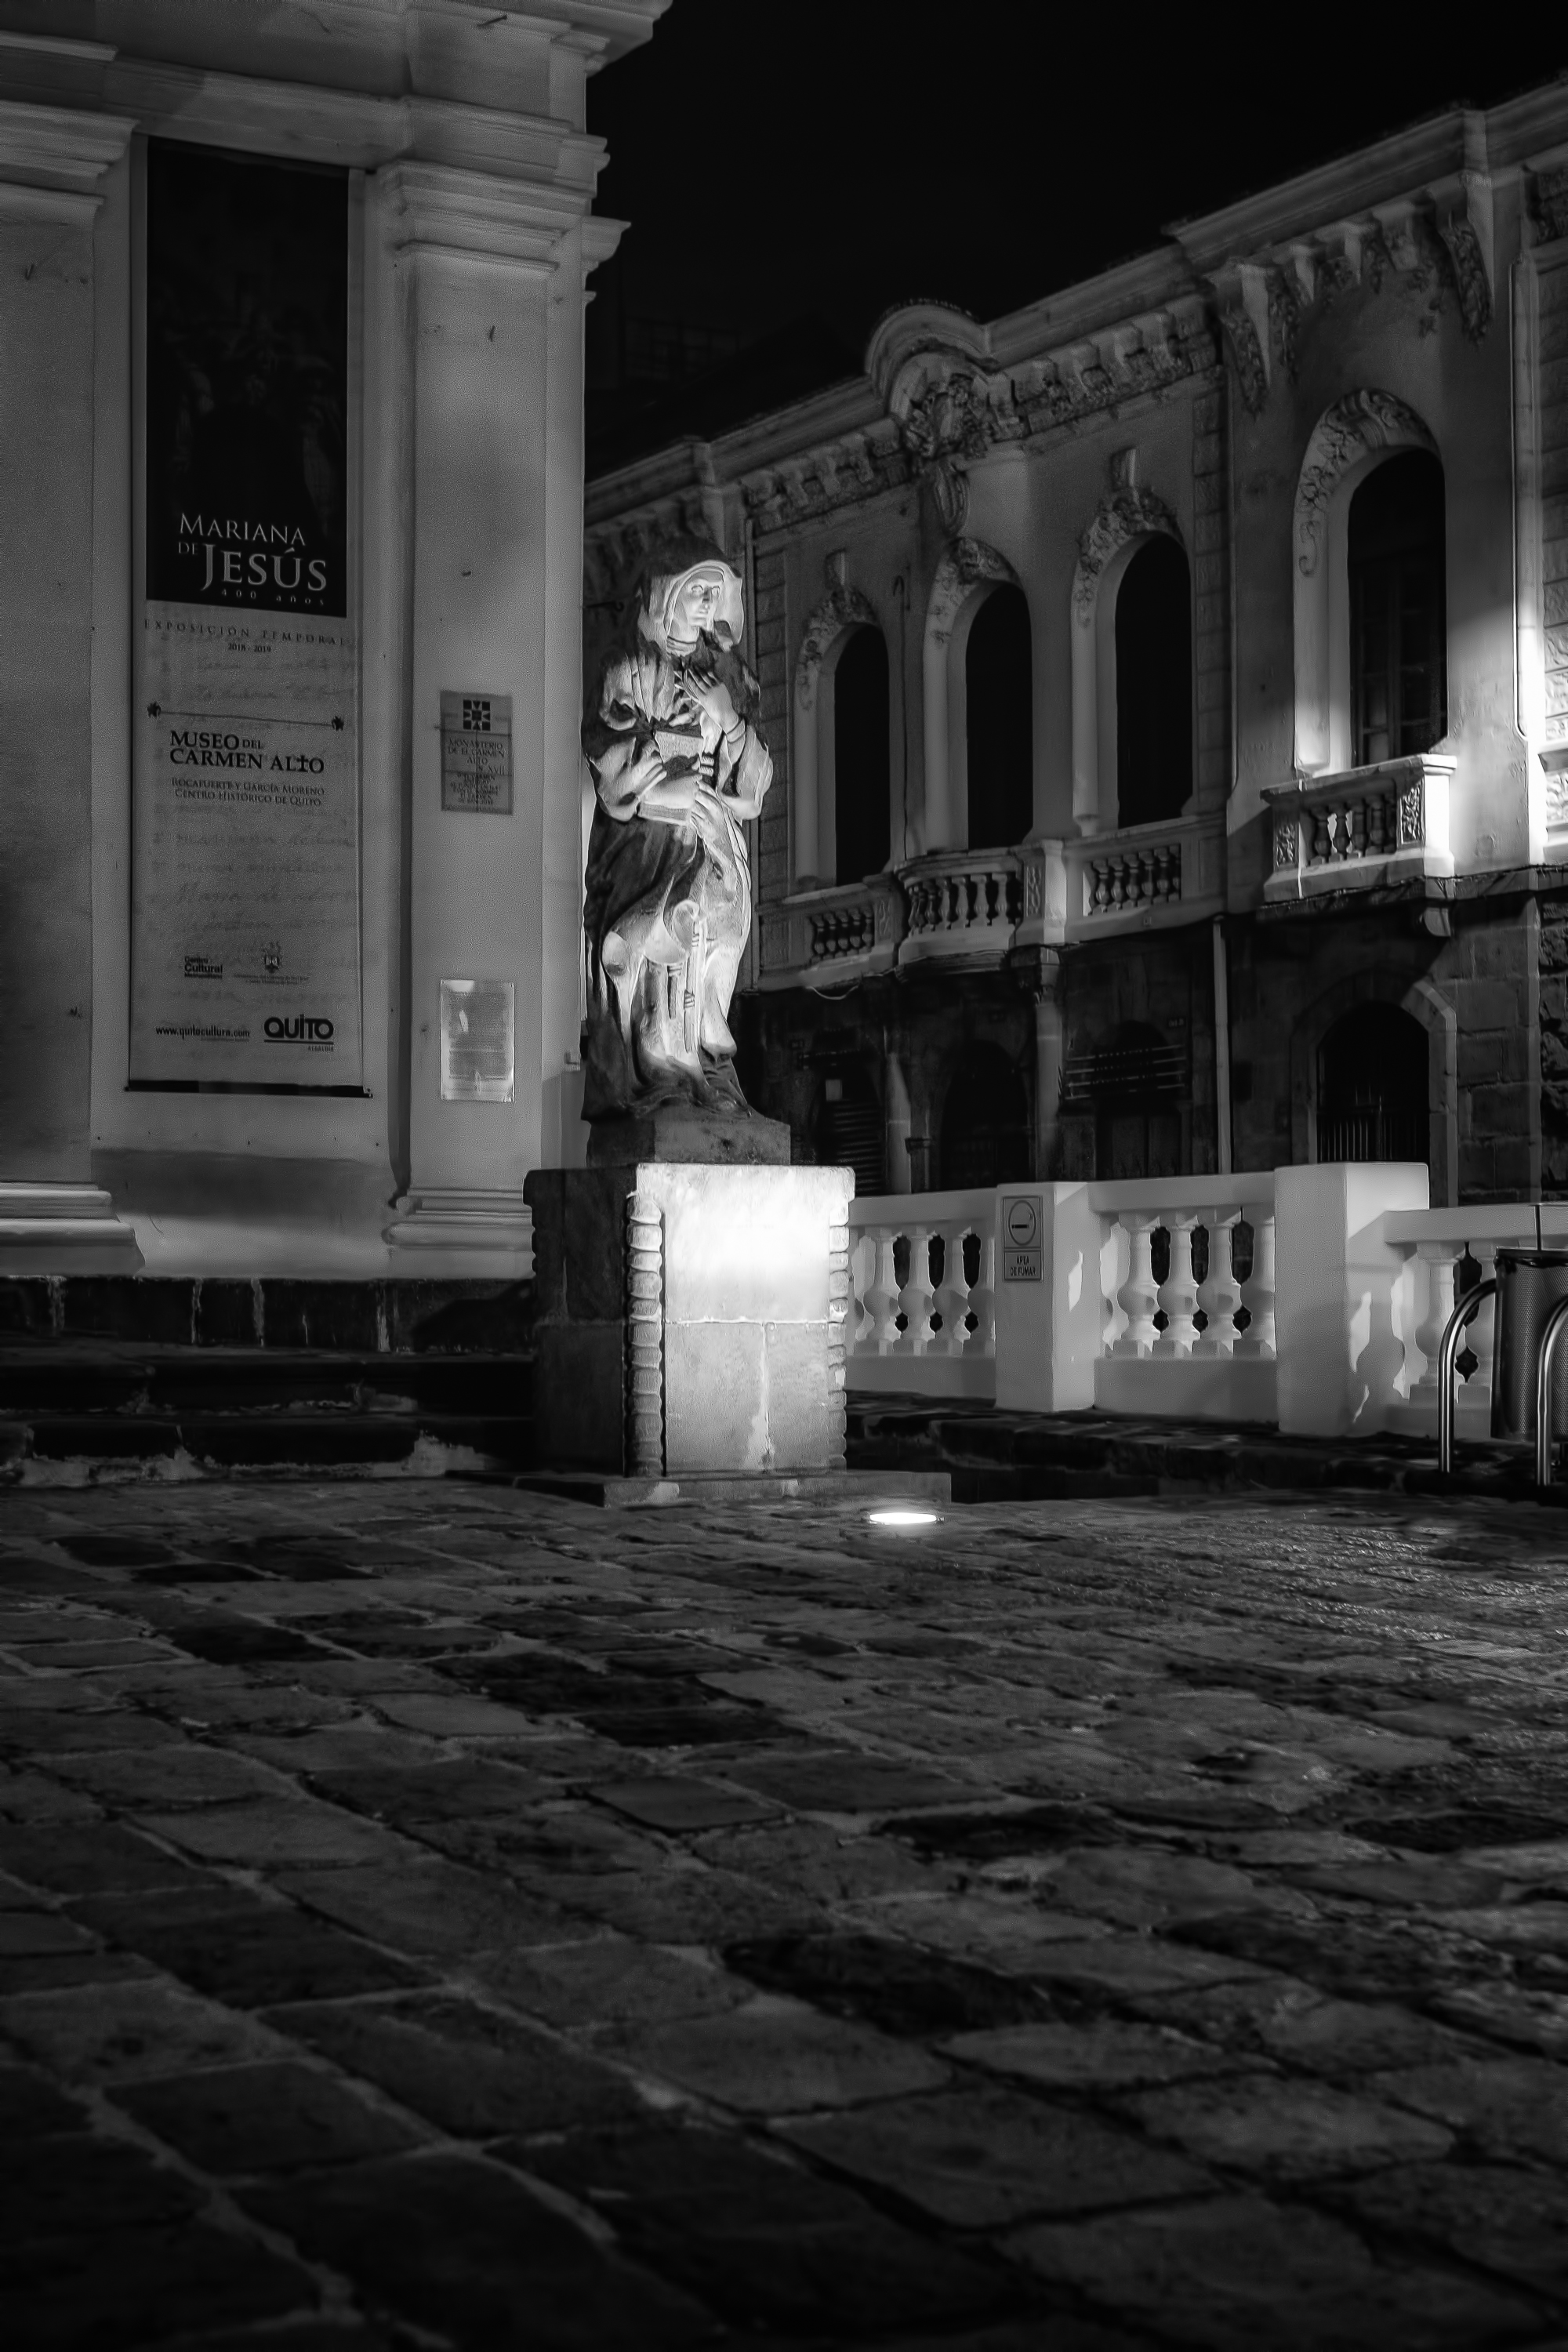 """Alone in the Square - Fujifilm XT-3, 1/60 @ f/2.8, ISO 800, Spot, 35mm. Took this shot while walking the streets of Old Town Quito at night. See the poem """"Ecuador"""" in the Poetry Section."""